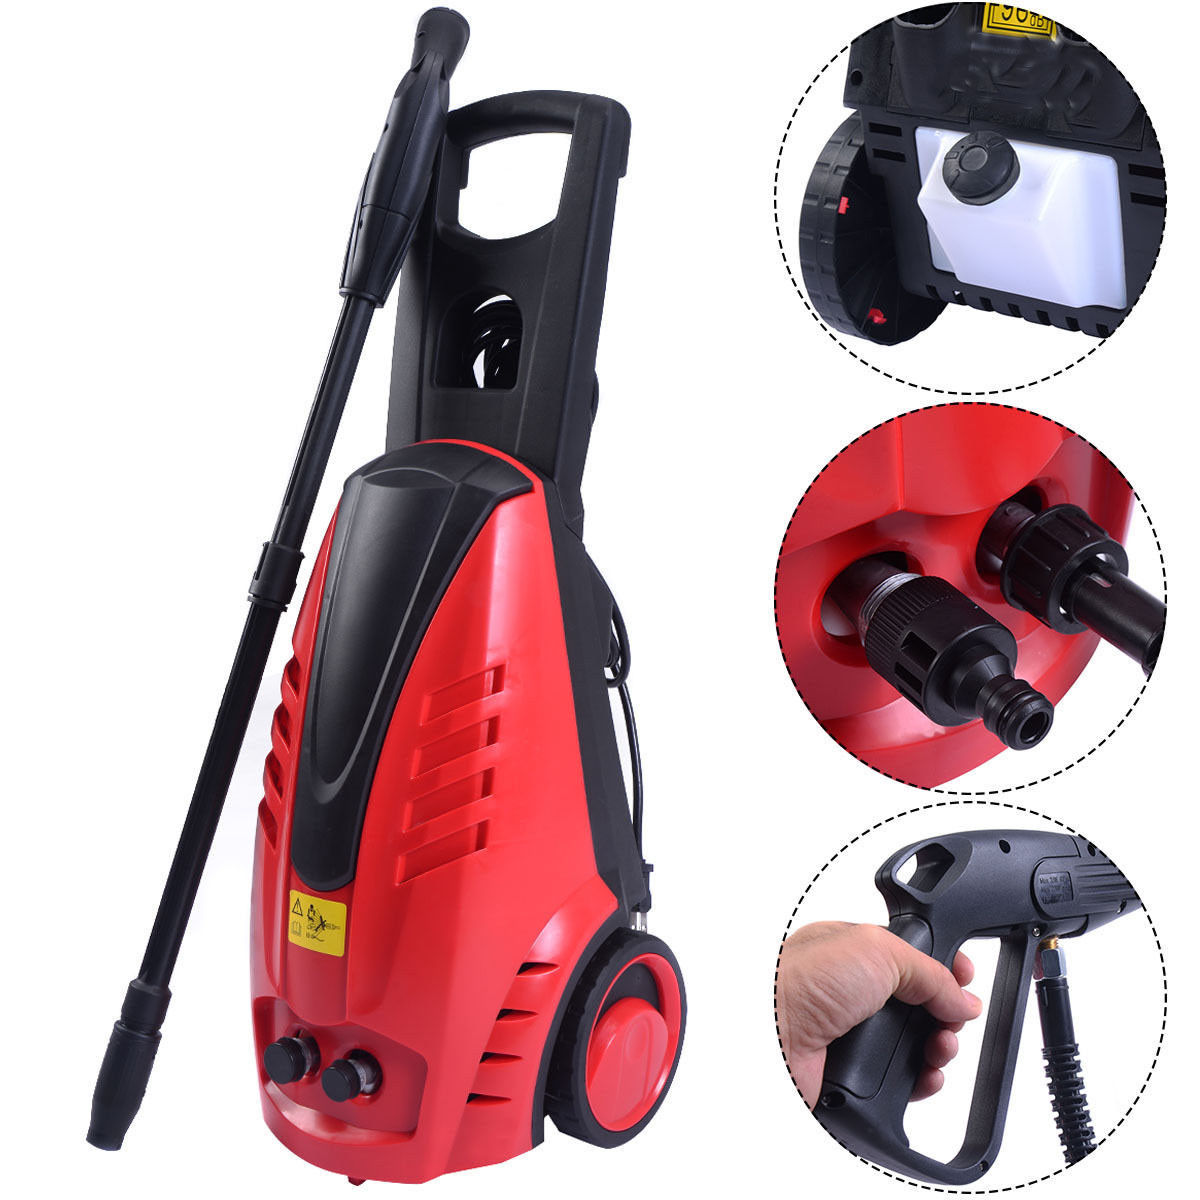 Ktaxon Portable Commercial 1800w Power 1850 PSI Electric High Pressure Jet Washer, Industrial Cleaner Sprayer